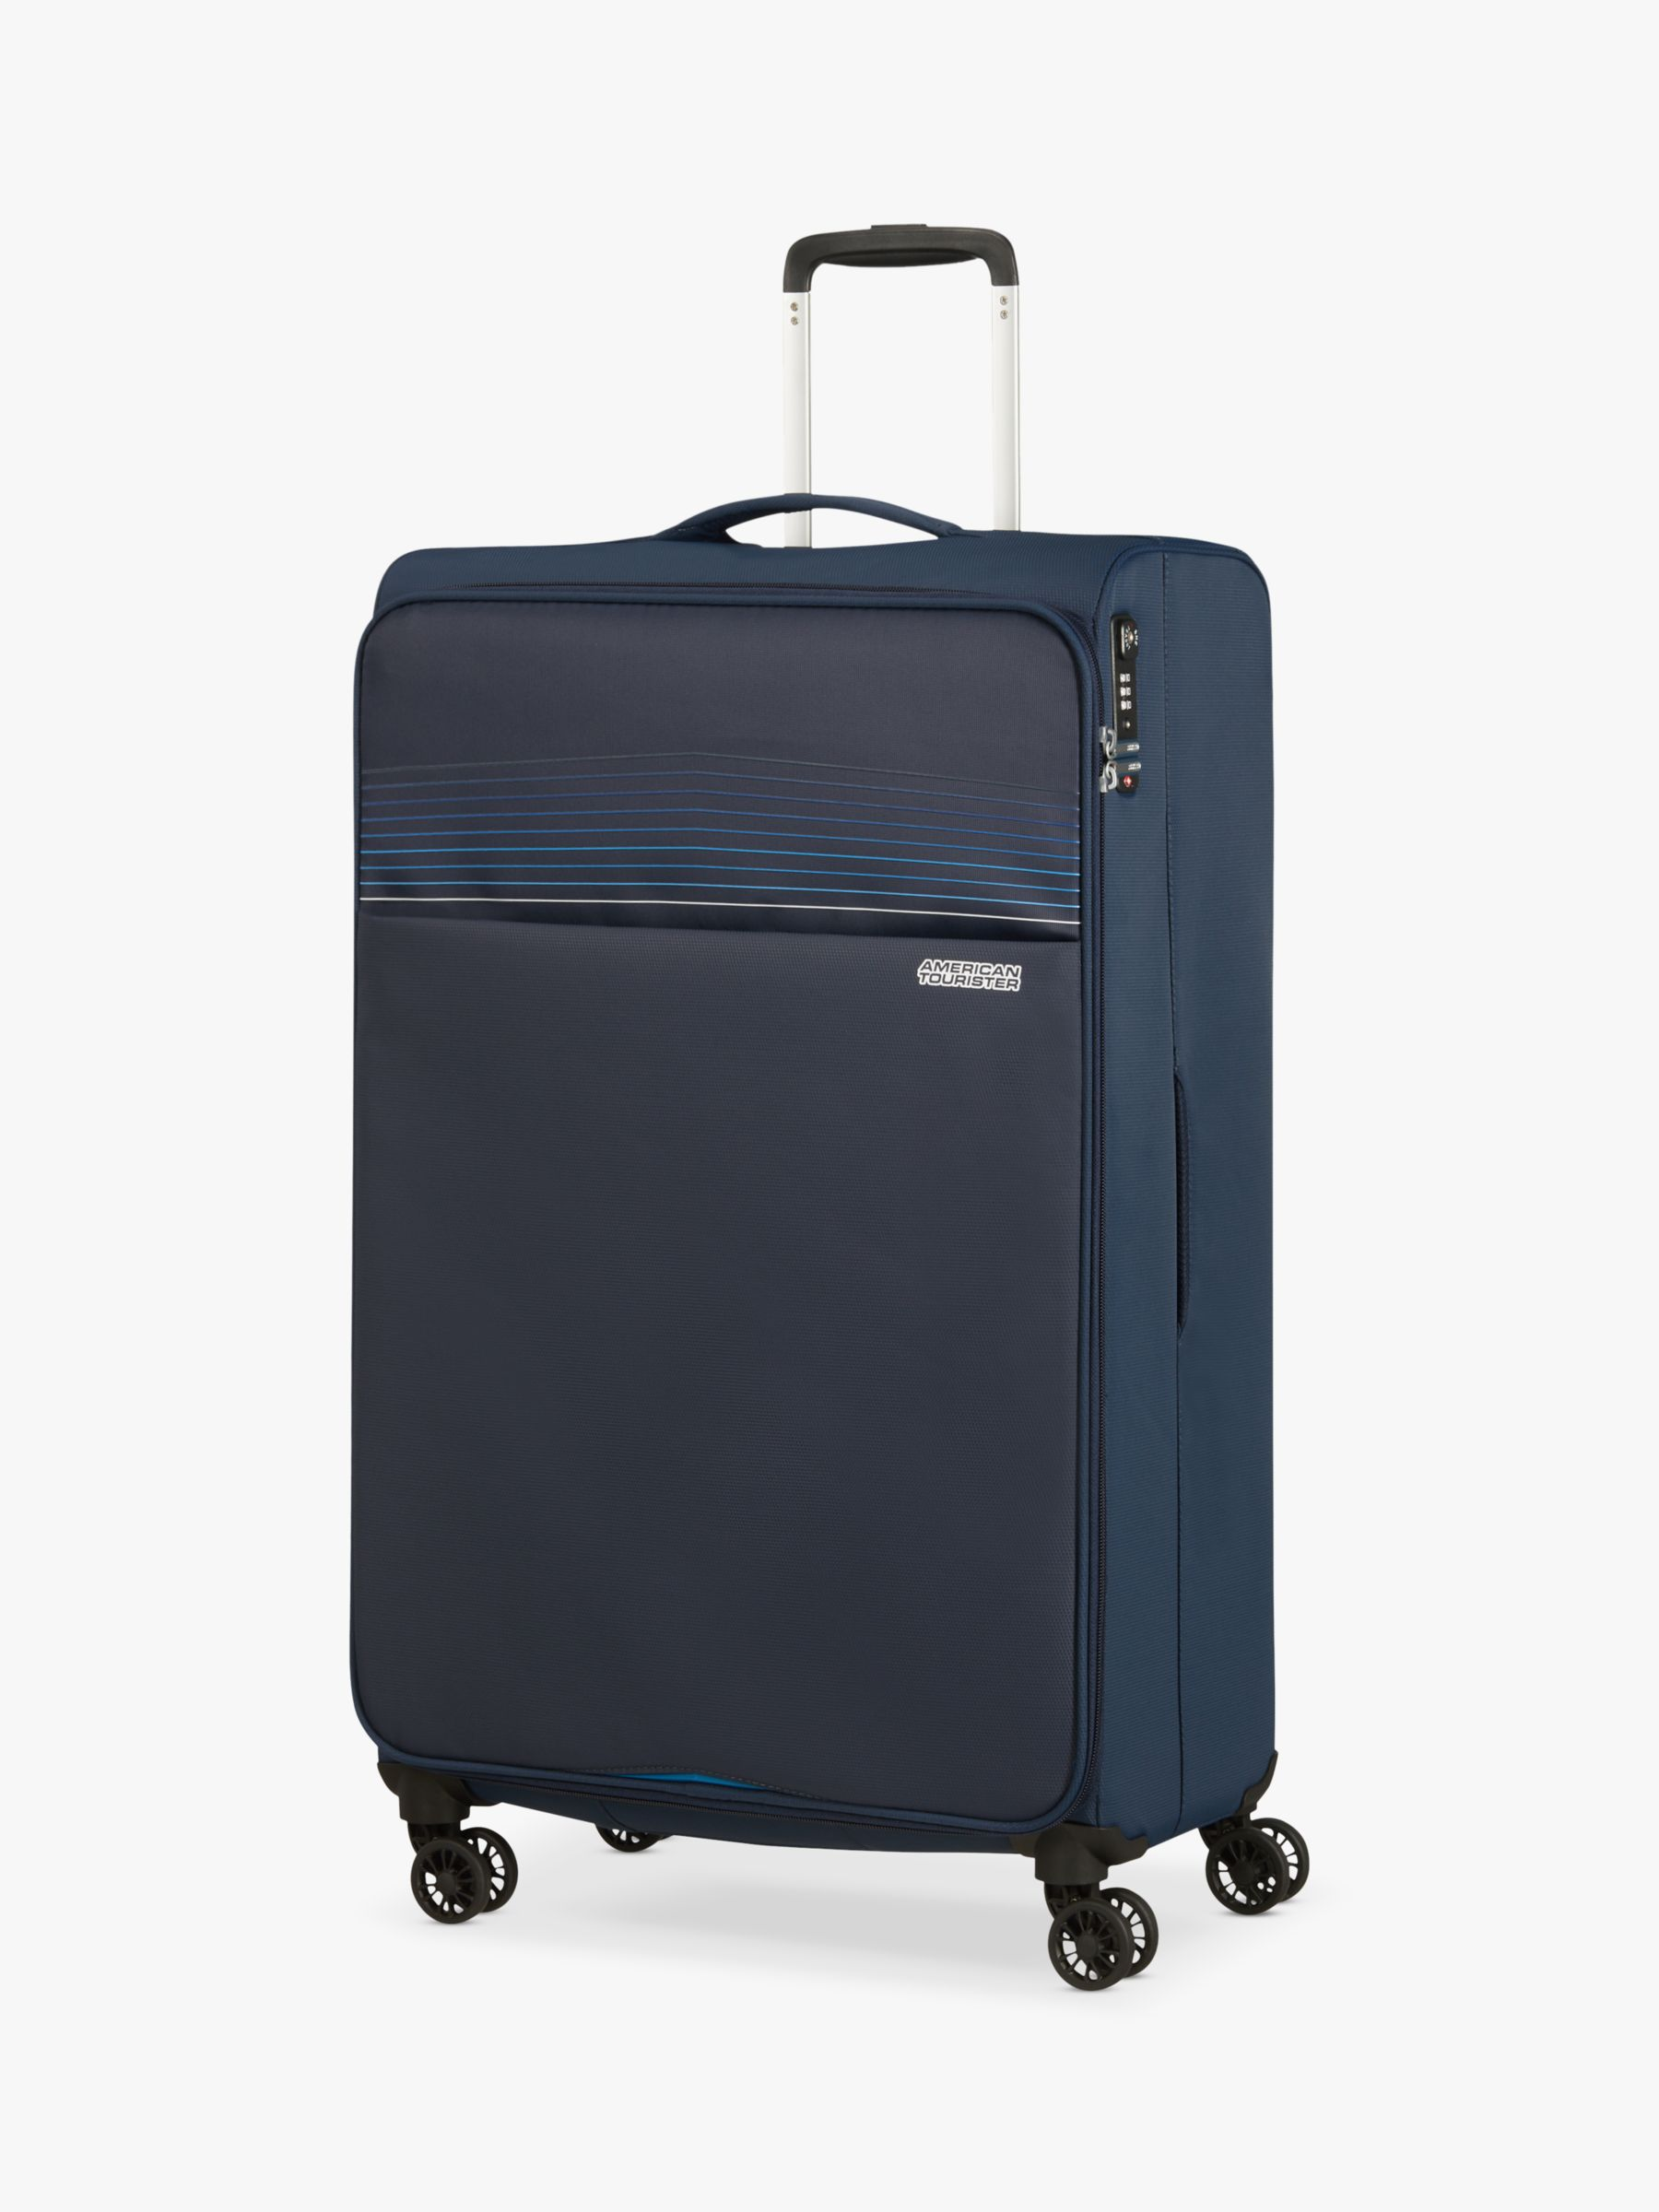 American Tourister American Tourister Lite Ray 4-Wheel 81cm Large Suitcase, Navy